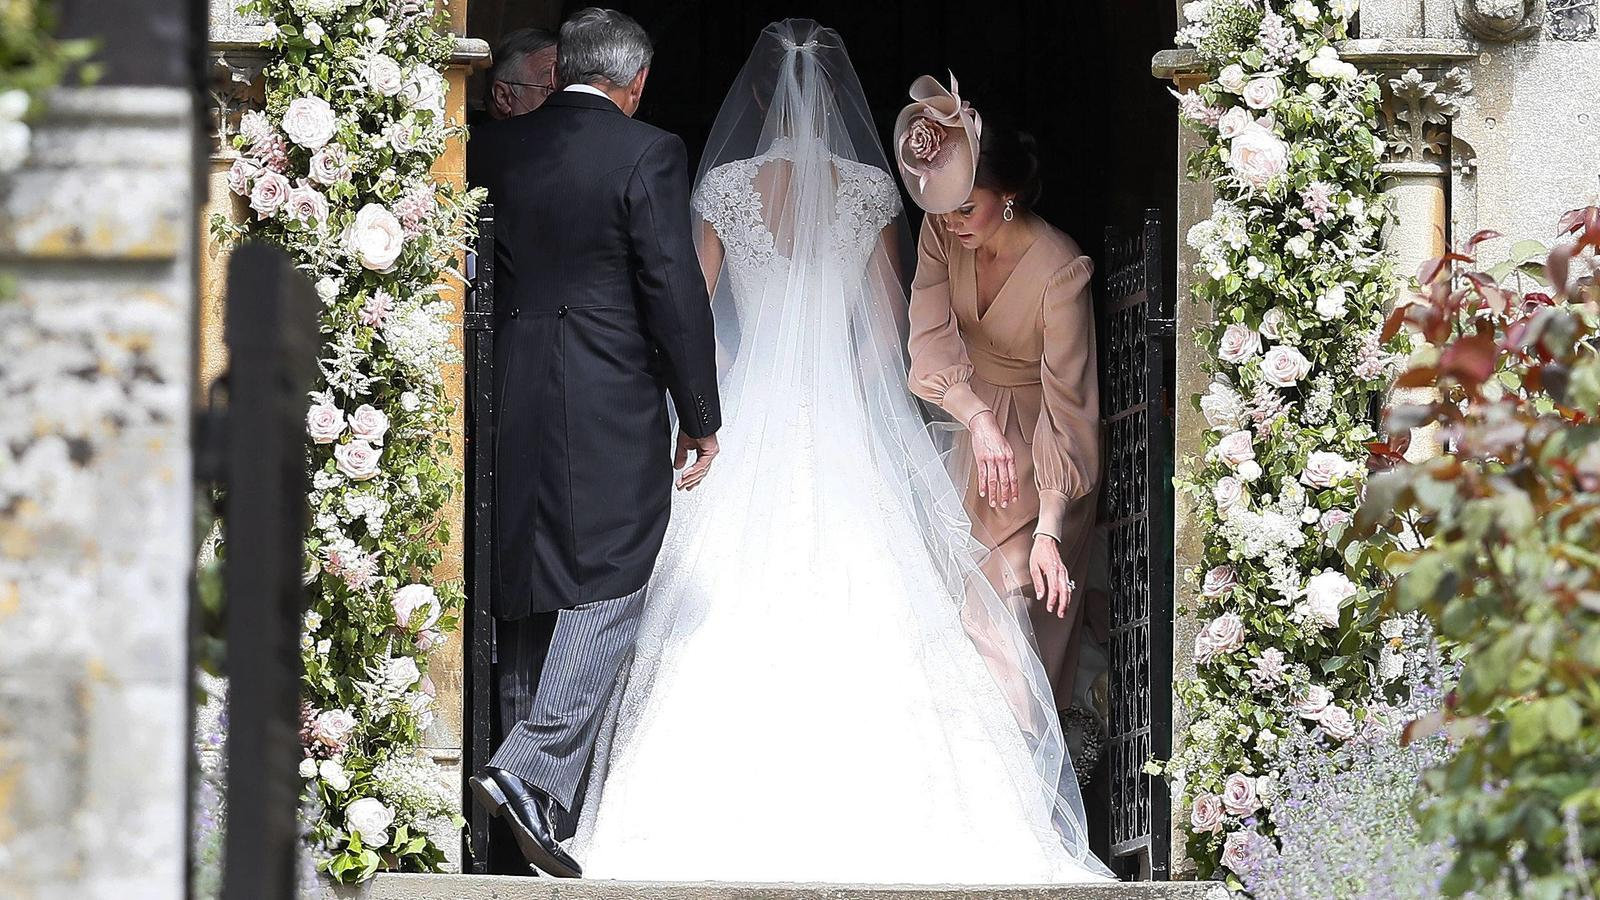 The Duchess of Cambridge, (right) , arranges the train of her sister Pippa Middleton as she arrives, at St Mark s church in Englefield, Berkshire, for her wedding to her millionaire groom James Matthews at an event dubbed the society wedding of the y